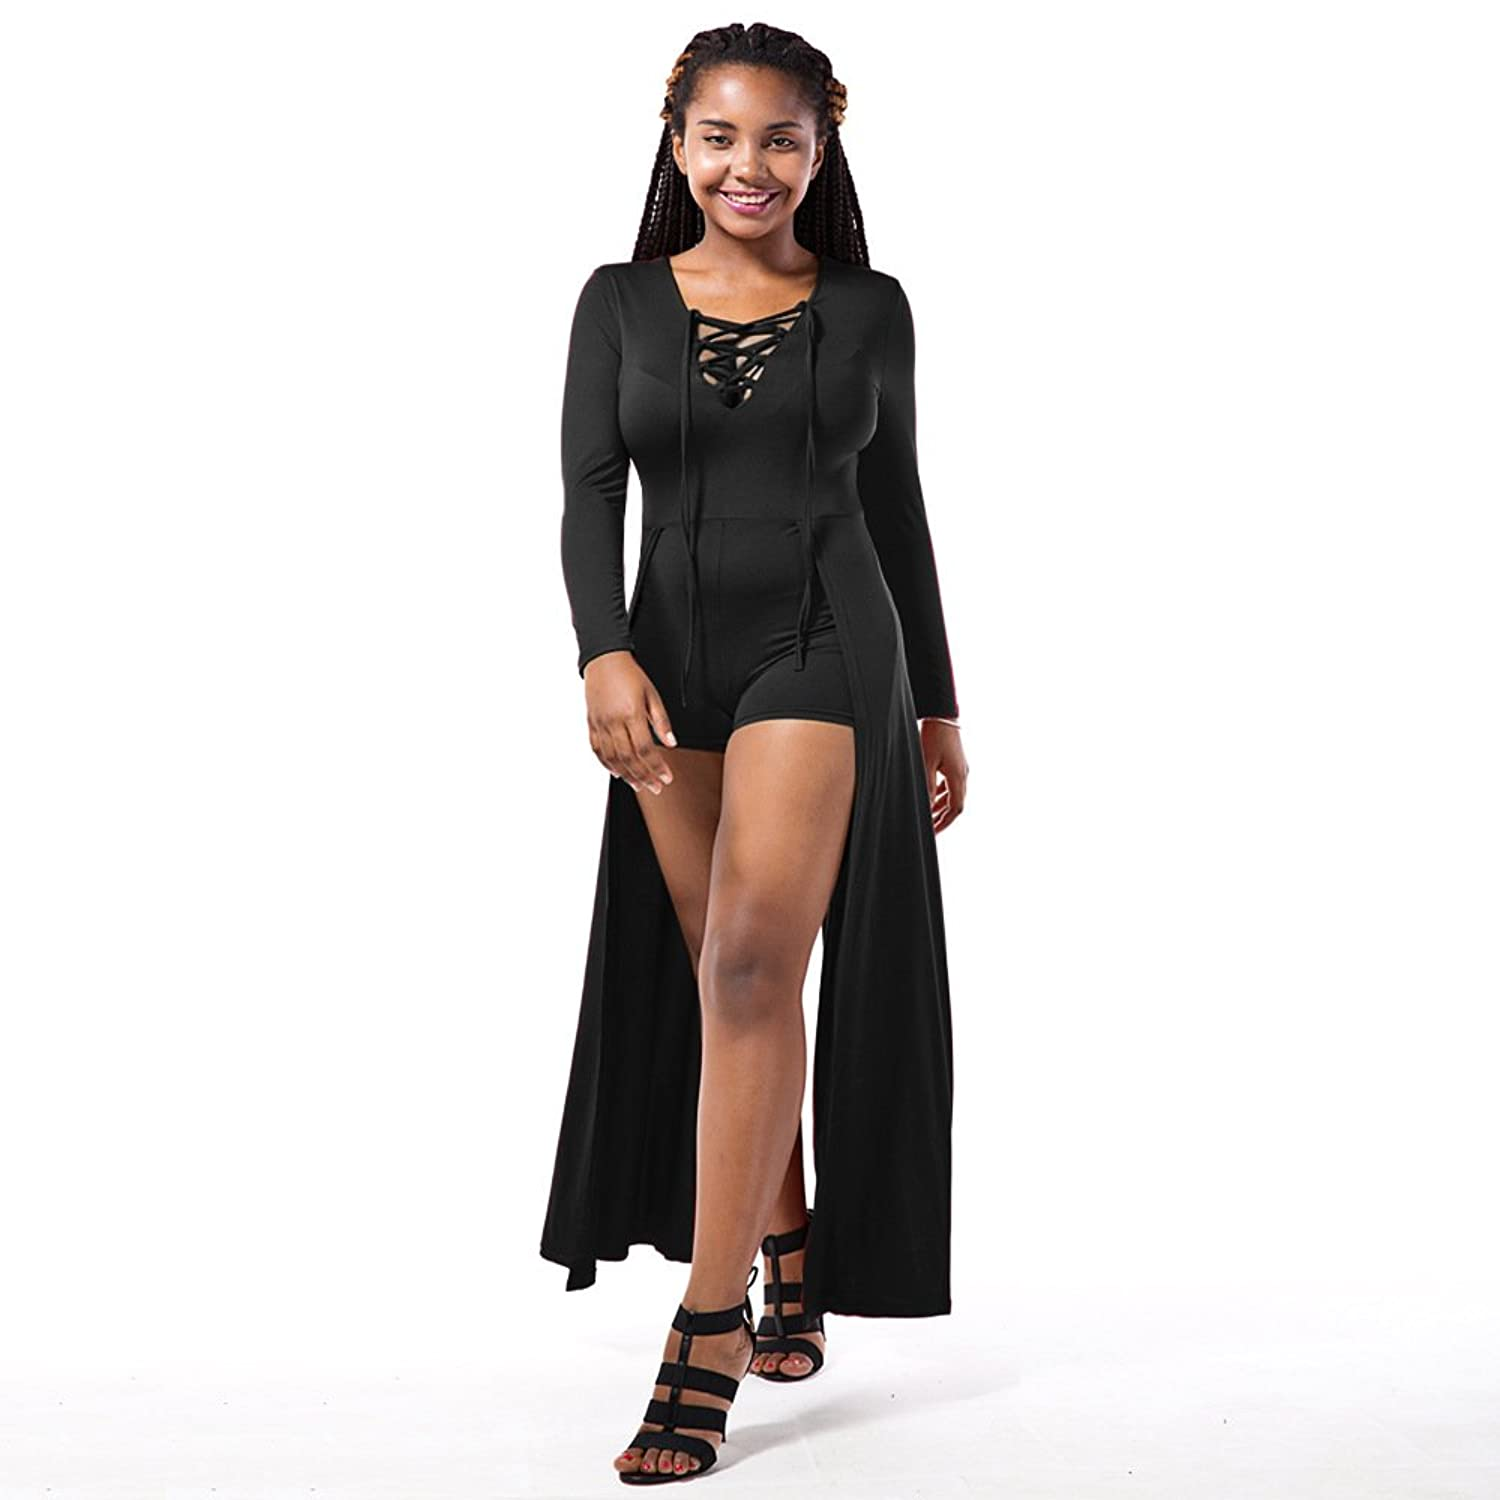 Women's Lace-up Neck Long Sleeve Cloak Rompers